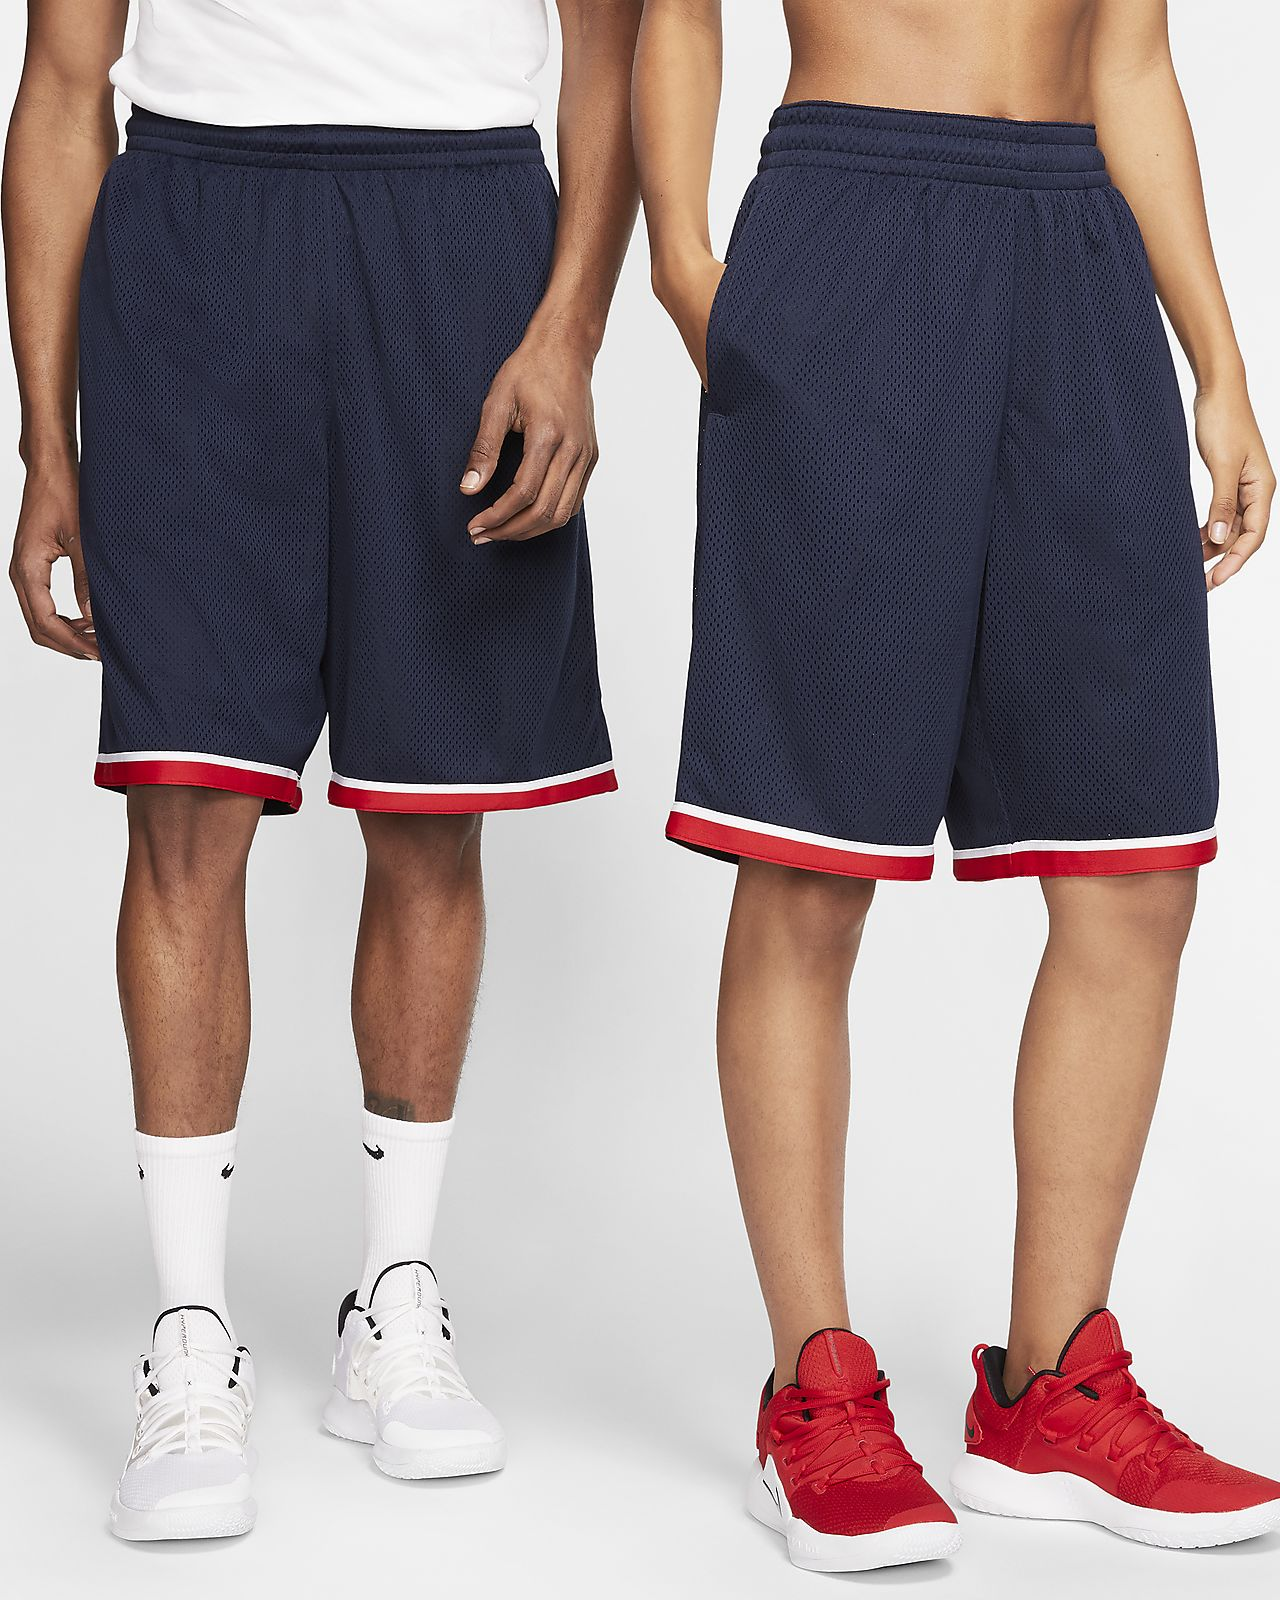 Nike Dri FIT Classic Men's Basketball Shorts